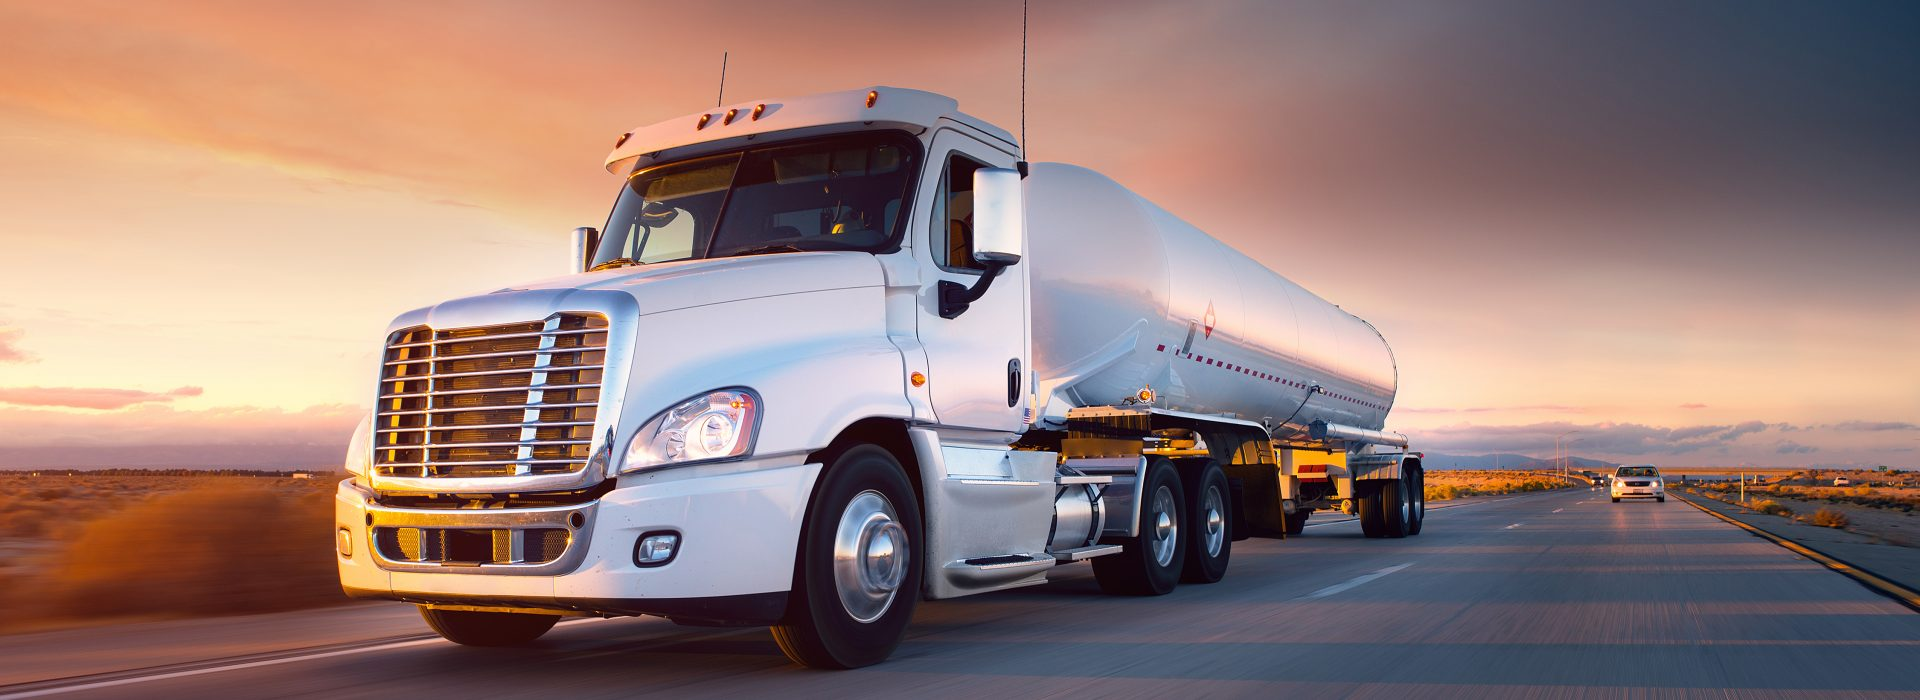 ee67133232 Truck Finance for Your Business – Australia